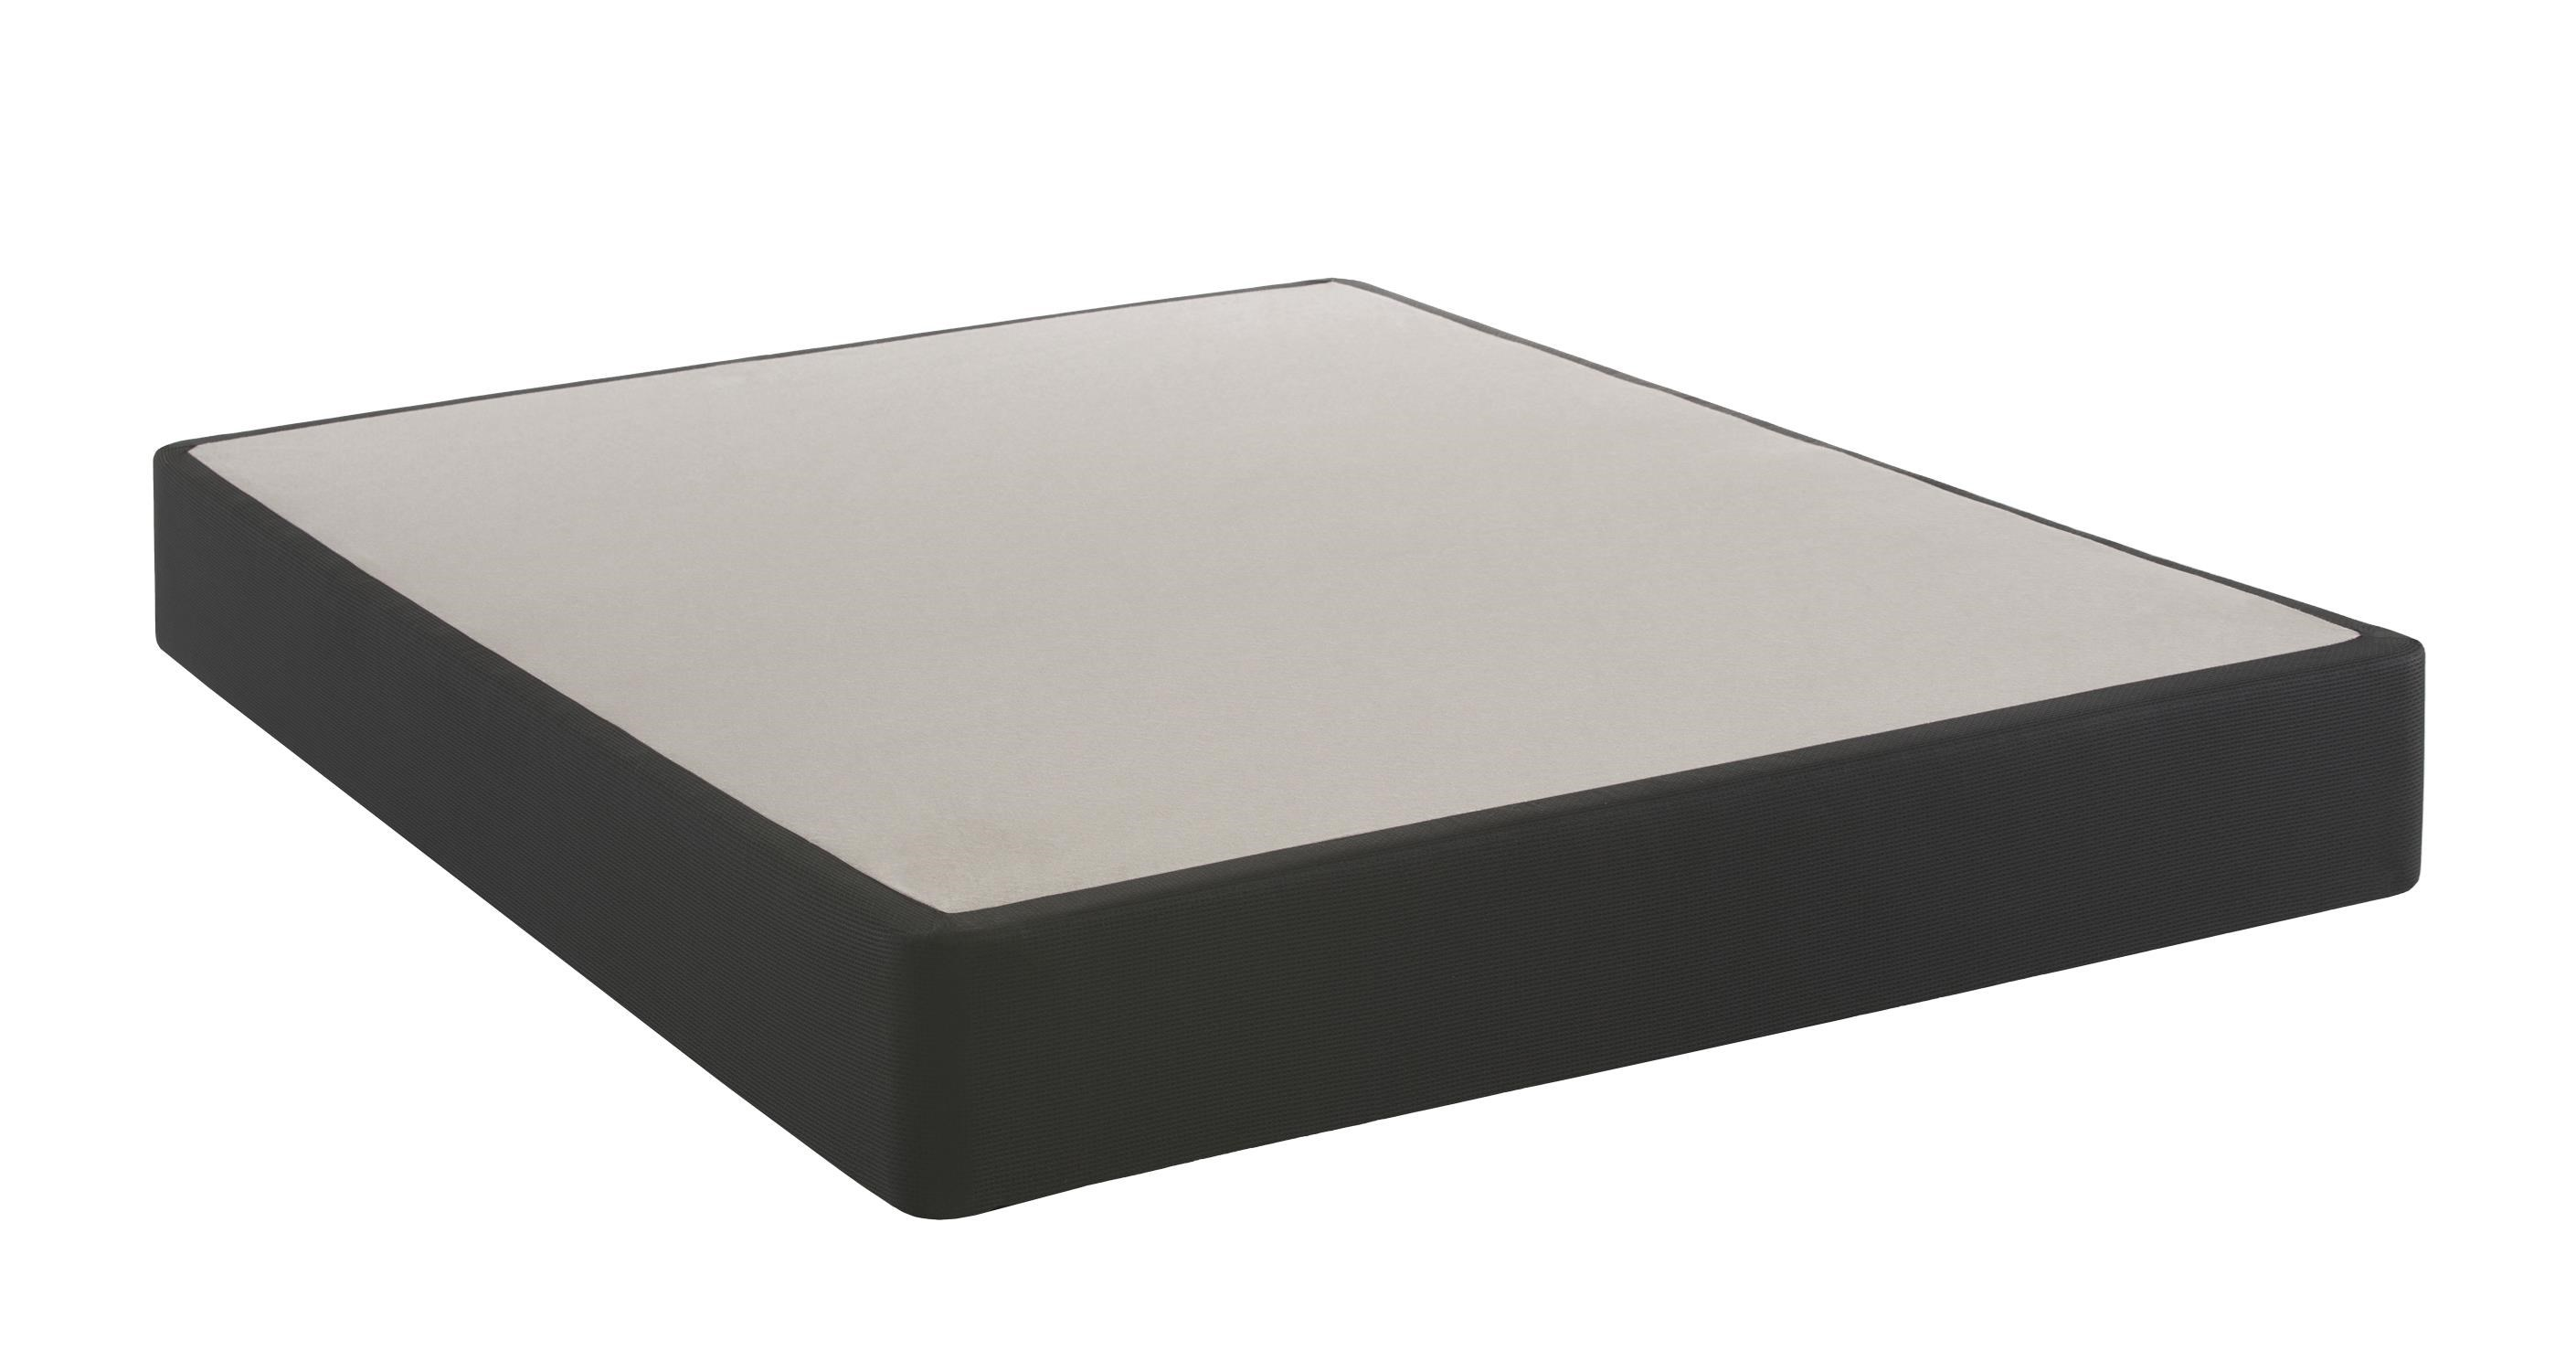 """2017 StableSupport Foundations Split Cal King Standard Base 9"""" Height by Sealy at Morris Home"""